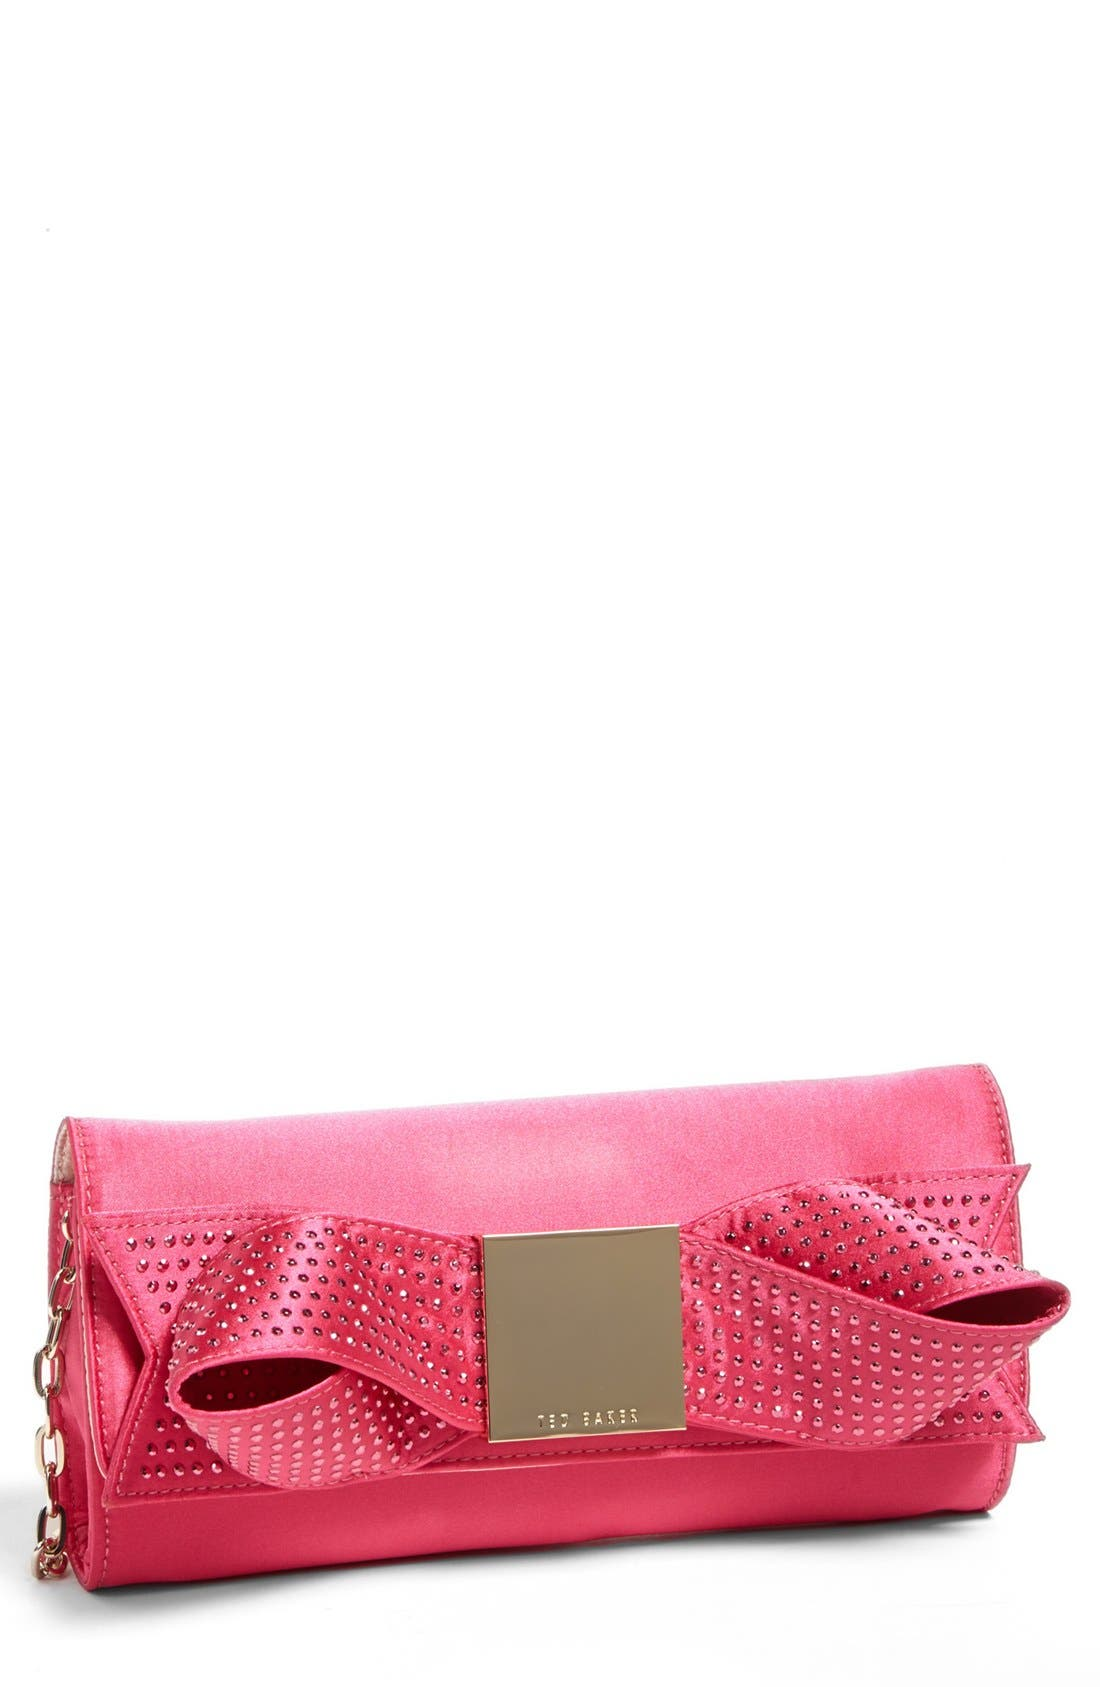 Main Image - Ted Baker London 'Holiday - Satin Bow' Clutch